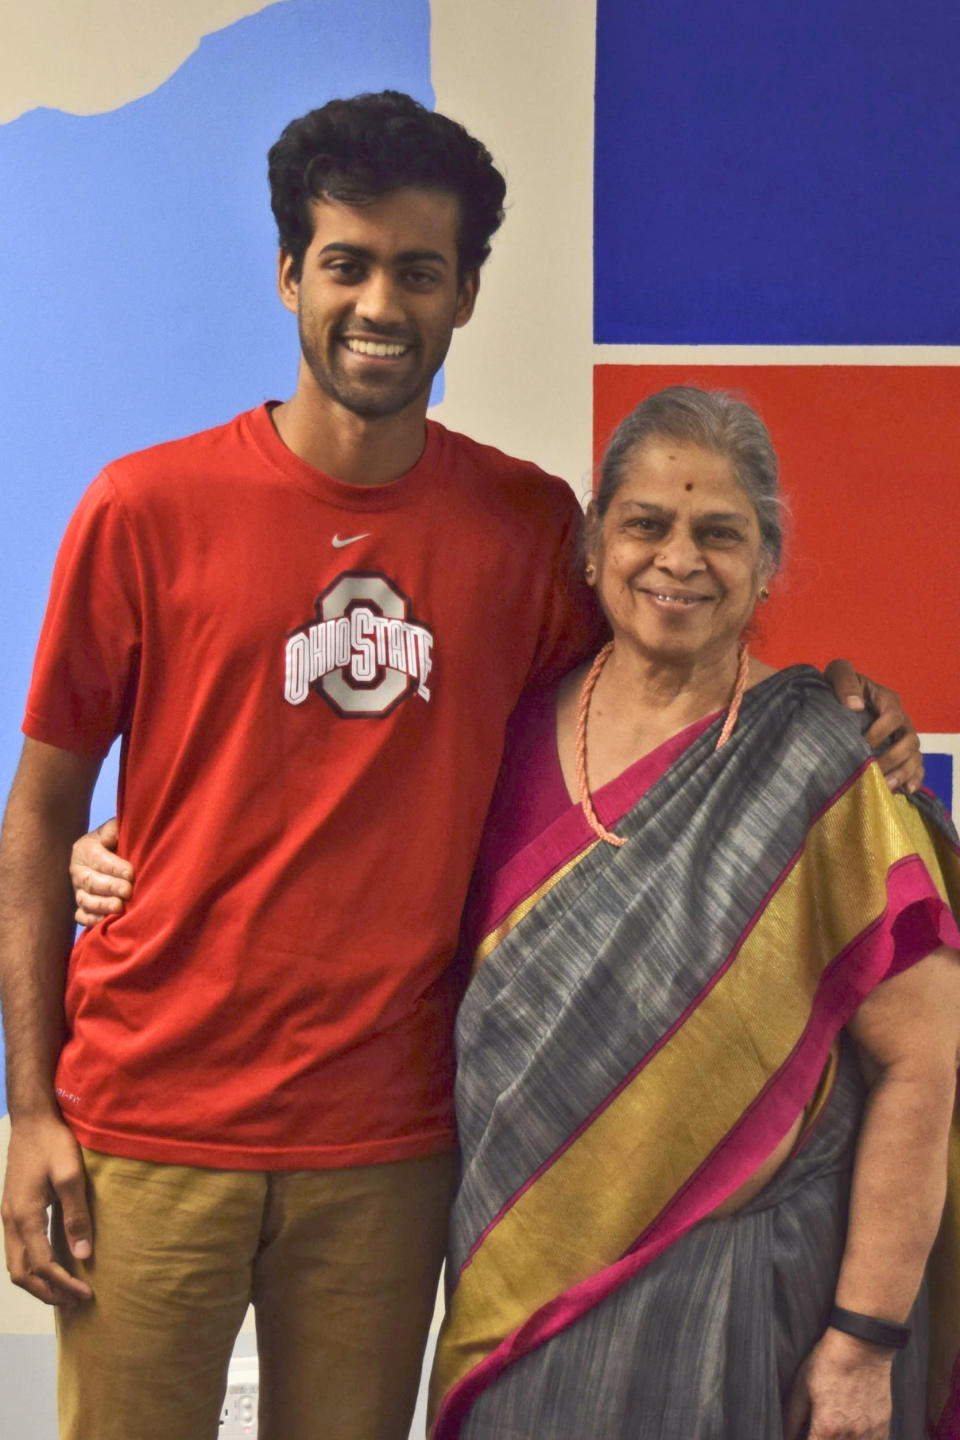 In this photo provided by courtesy of Arman Ramnath, Ramnath poses with his grandmother, Saroja Seetharaman, Oct. 5, 2016, in Columbus, Ohio. In Ramnath's family, his India-born maternal grandmother, Seetharaman, rotates among her three children and their six grandchildren, in Dallas, Atlanta and his Columbus home. The pandemic and its isolating restrictions have been especially tough for many of the nation's some 70 million grandparents, many at ages when they are considered most vulnerable to the deadly COVID-19 virus. (Arman Ramnath via AP)